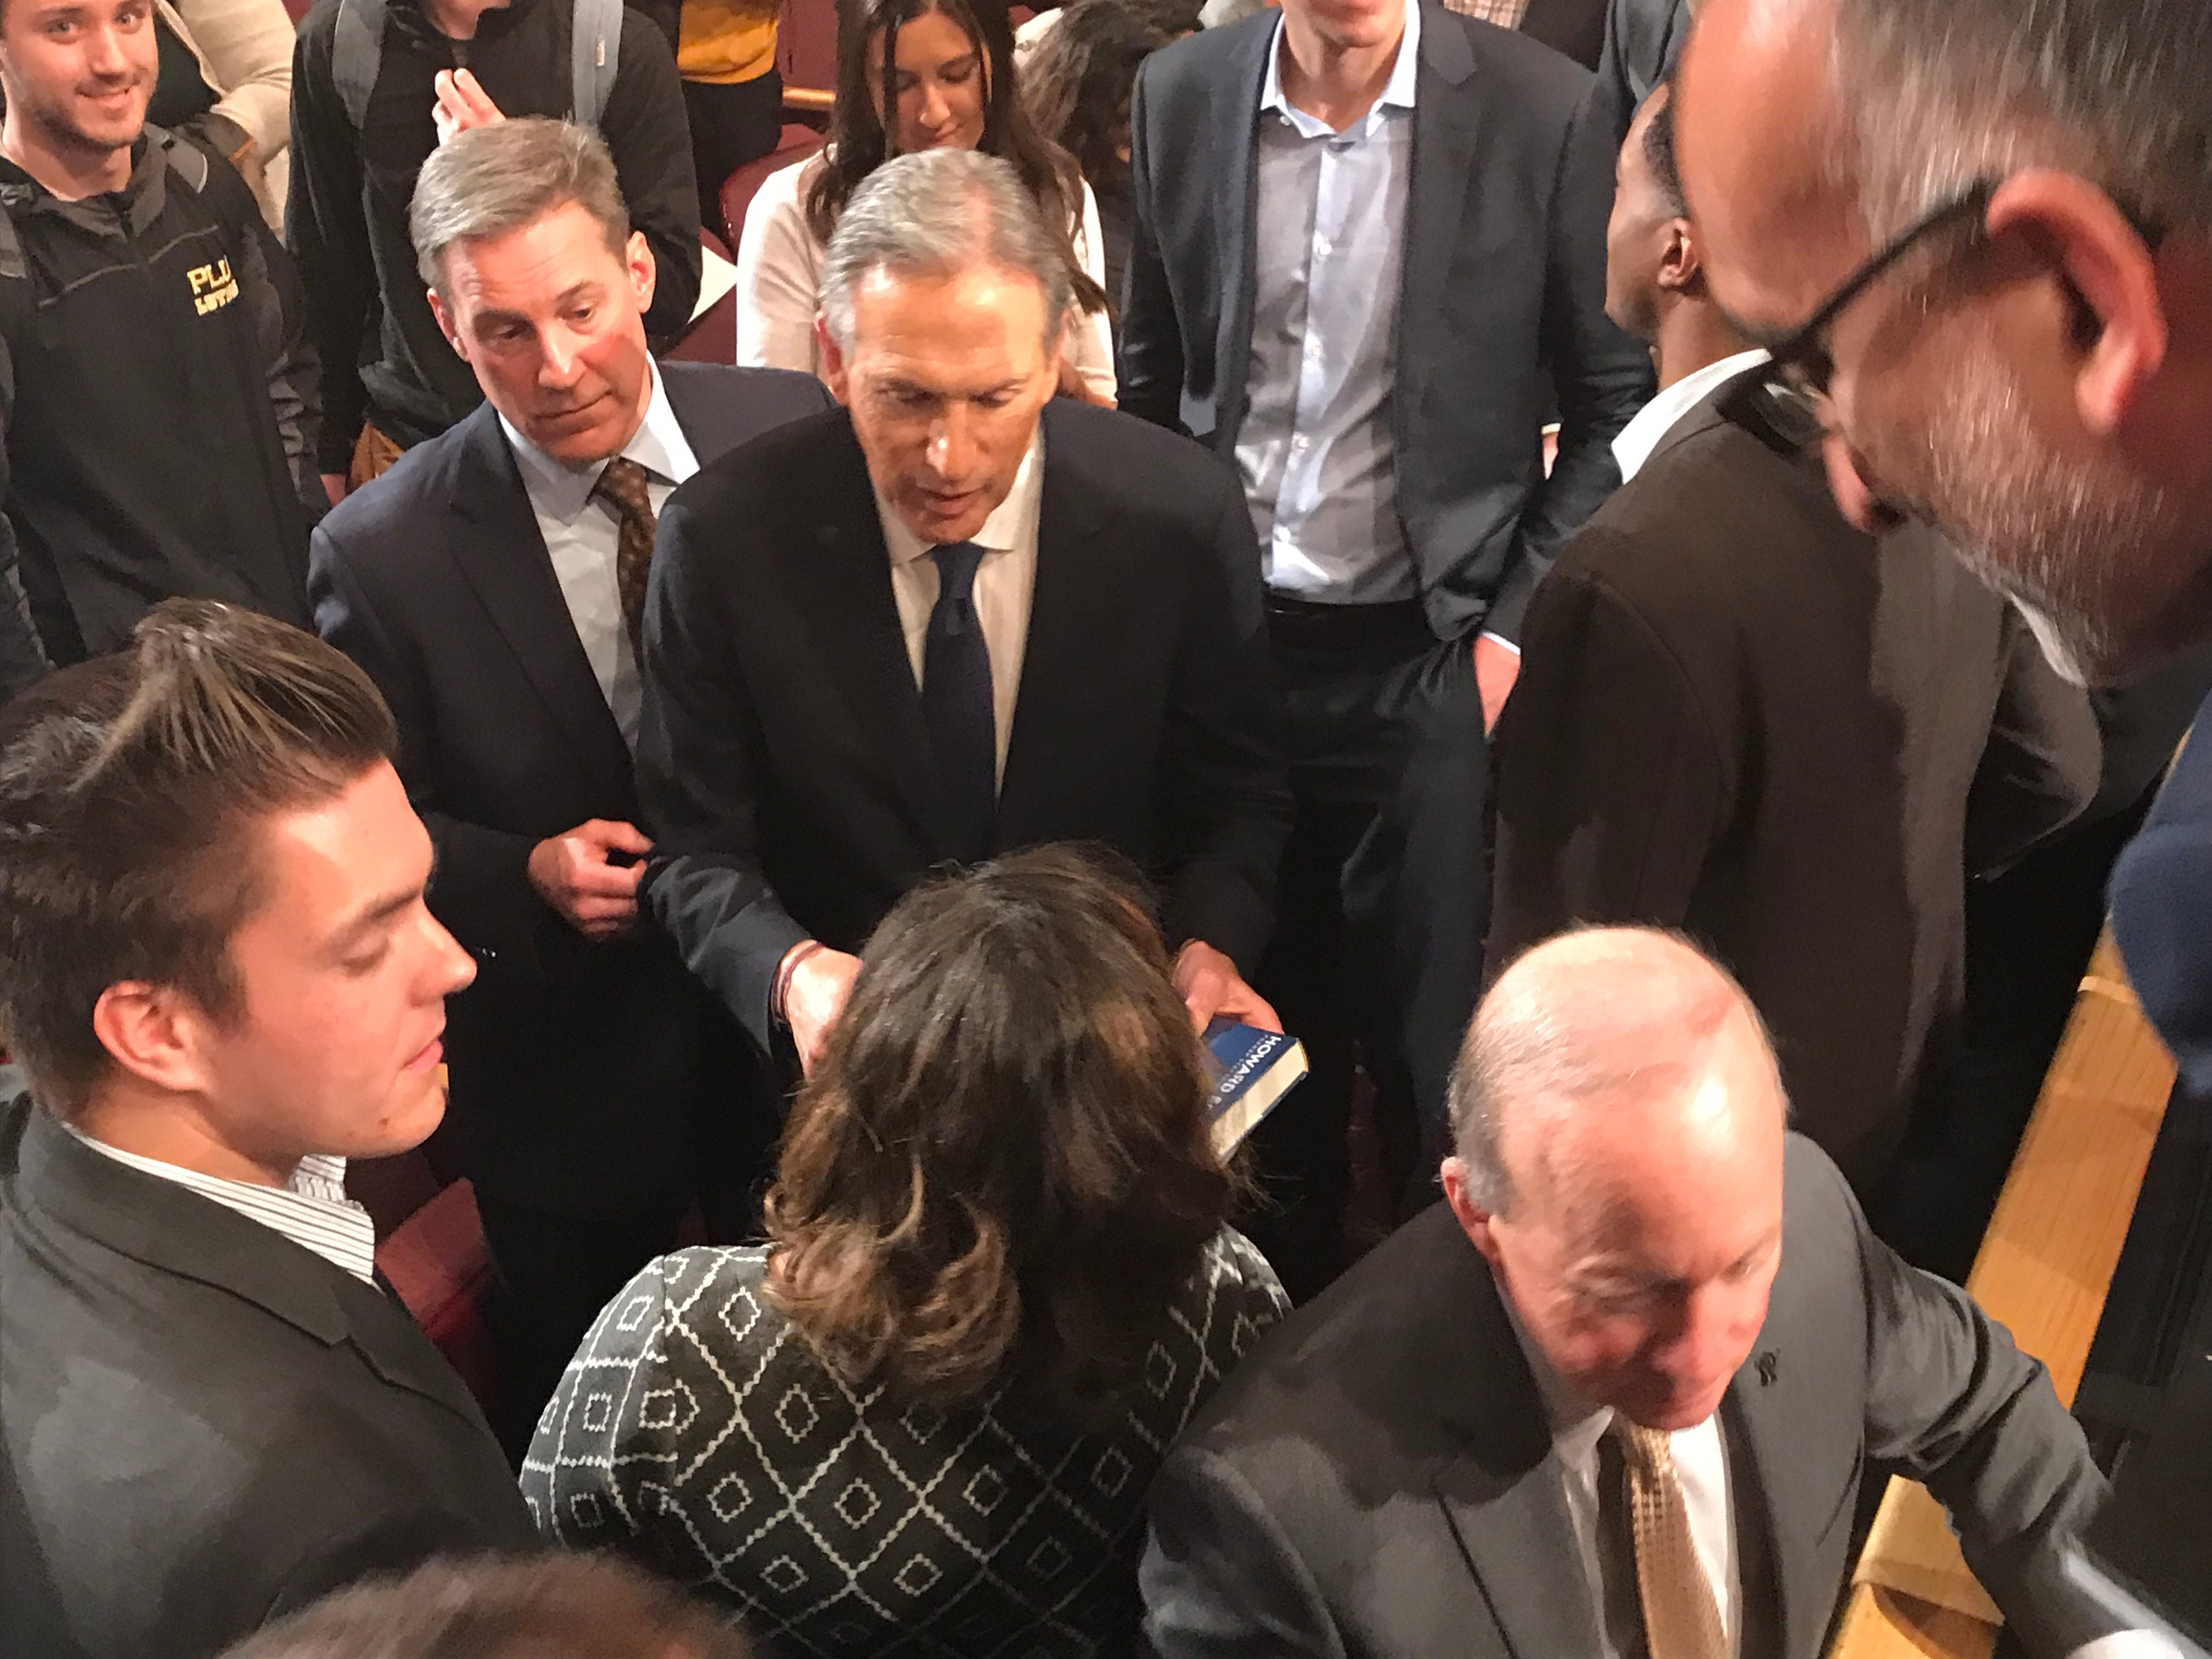 Howard Schultz, the former CEO of Starbucks who continues to consider an Independent run for President, appears at Purdue University on Thursday afternoon.